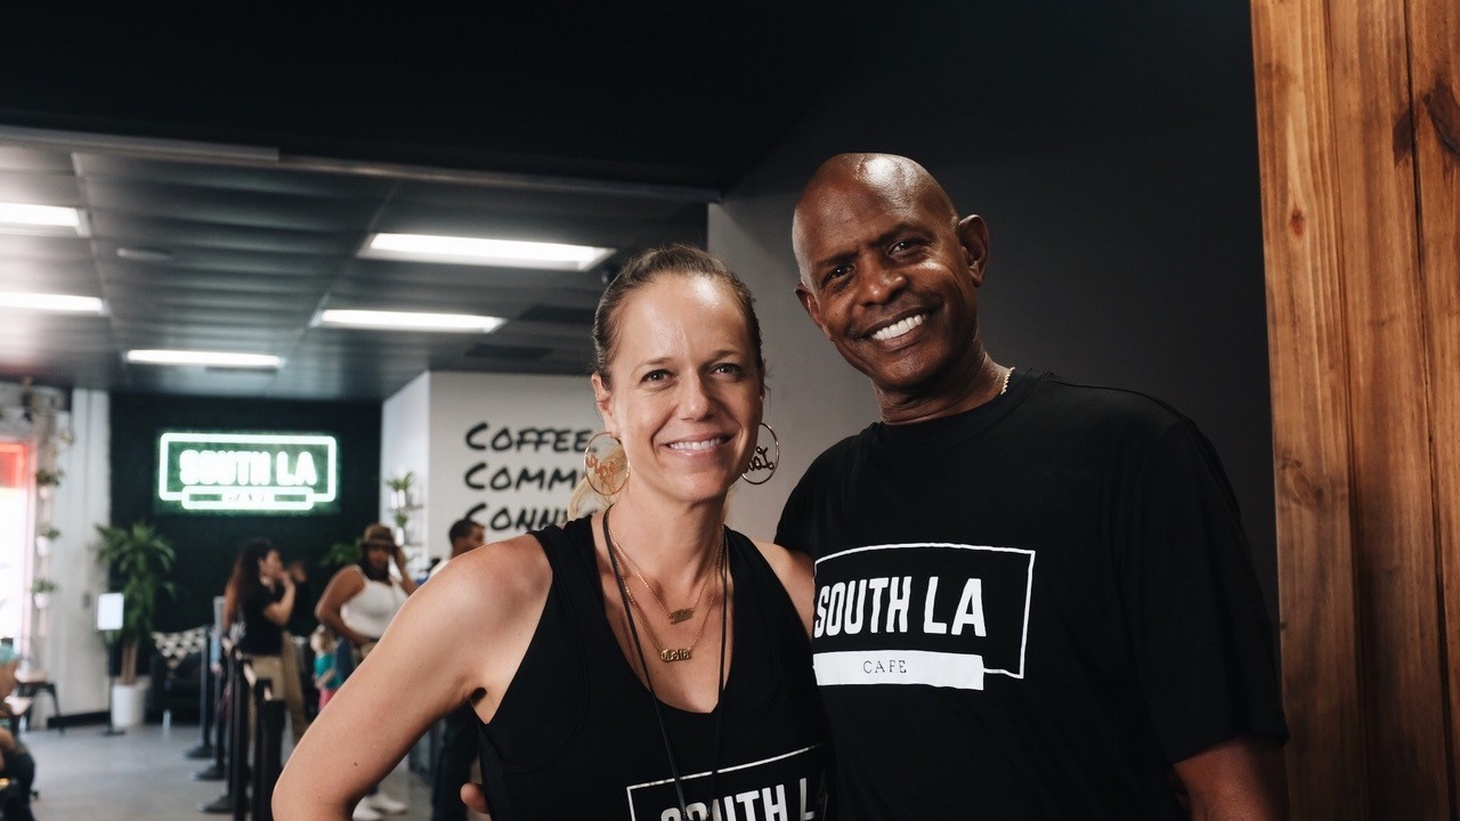 Celia and Joe Ward-Wallace are hoping the Good Food Zone policy will help them further grow their small business, South LA Cafe, which they opened in 2019 to offer fresh, affordable, and healthy food in a community of color.